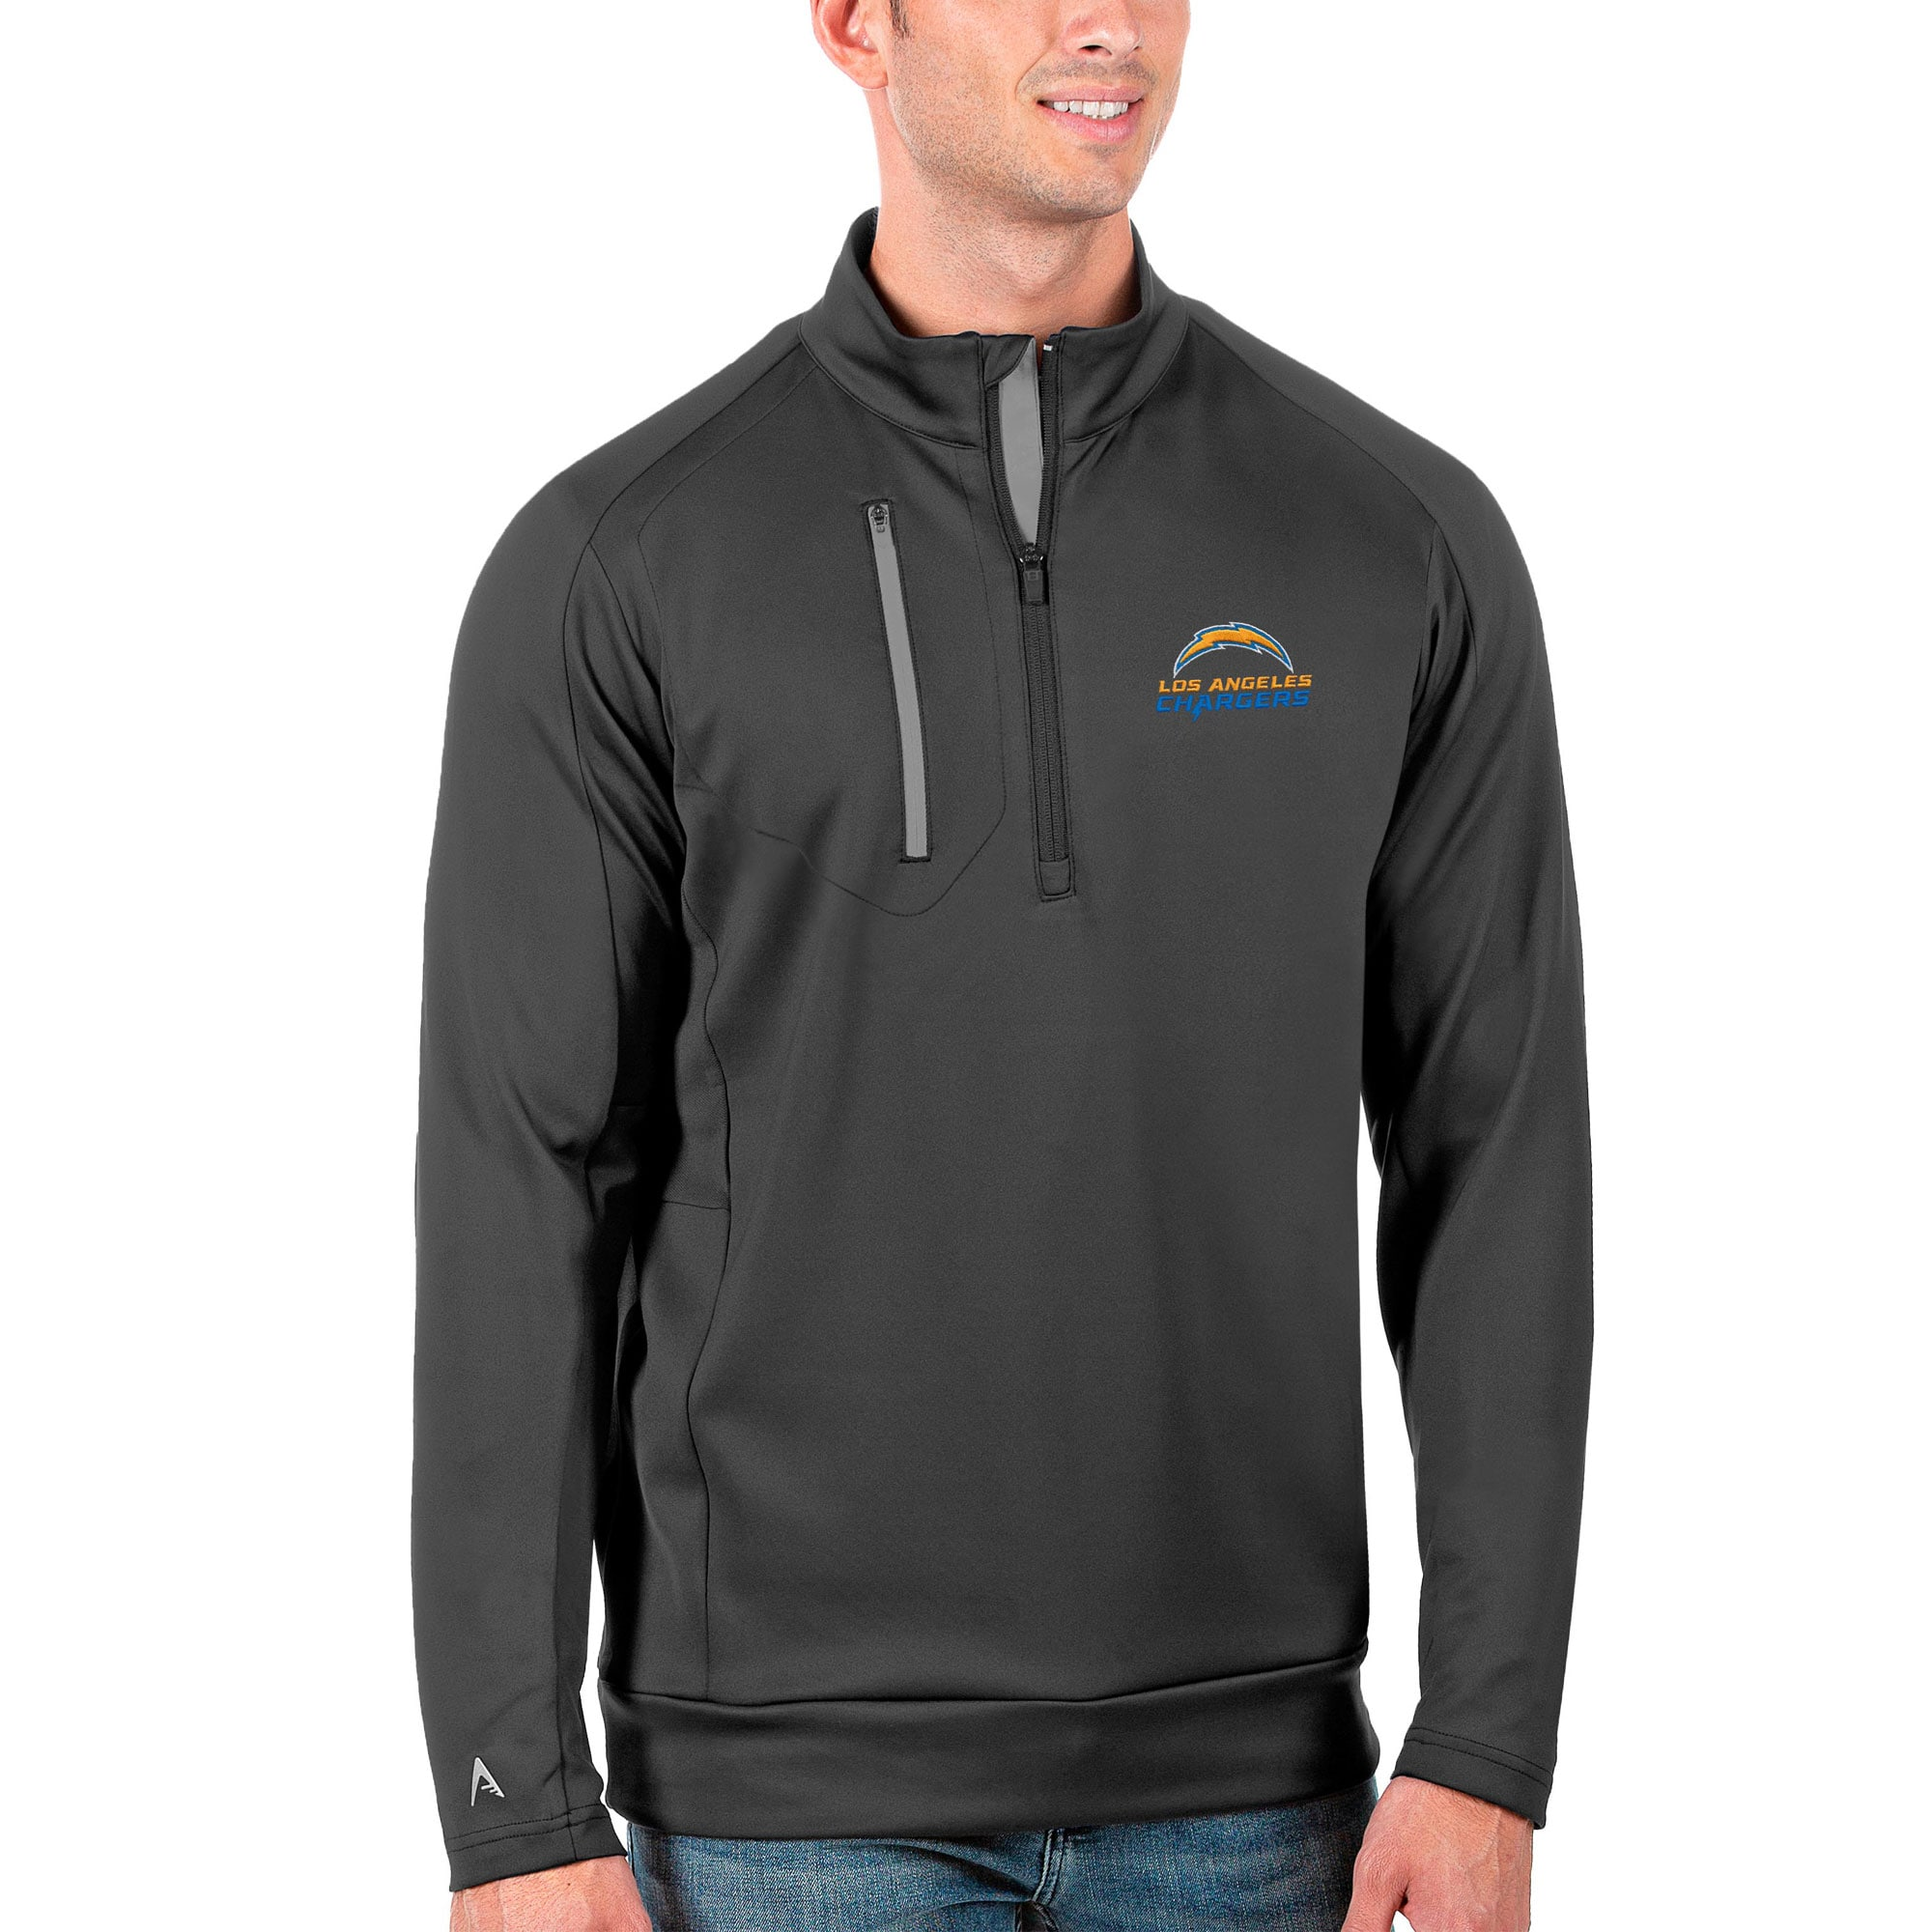 Los Angeles Chargers Antigua Generation Quarter-Zip Pullover Jacket - Charcoal/Silver